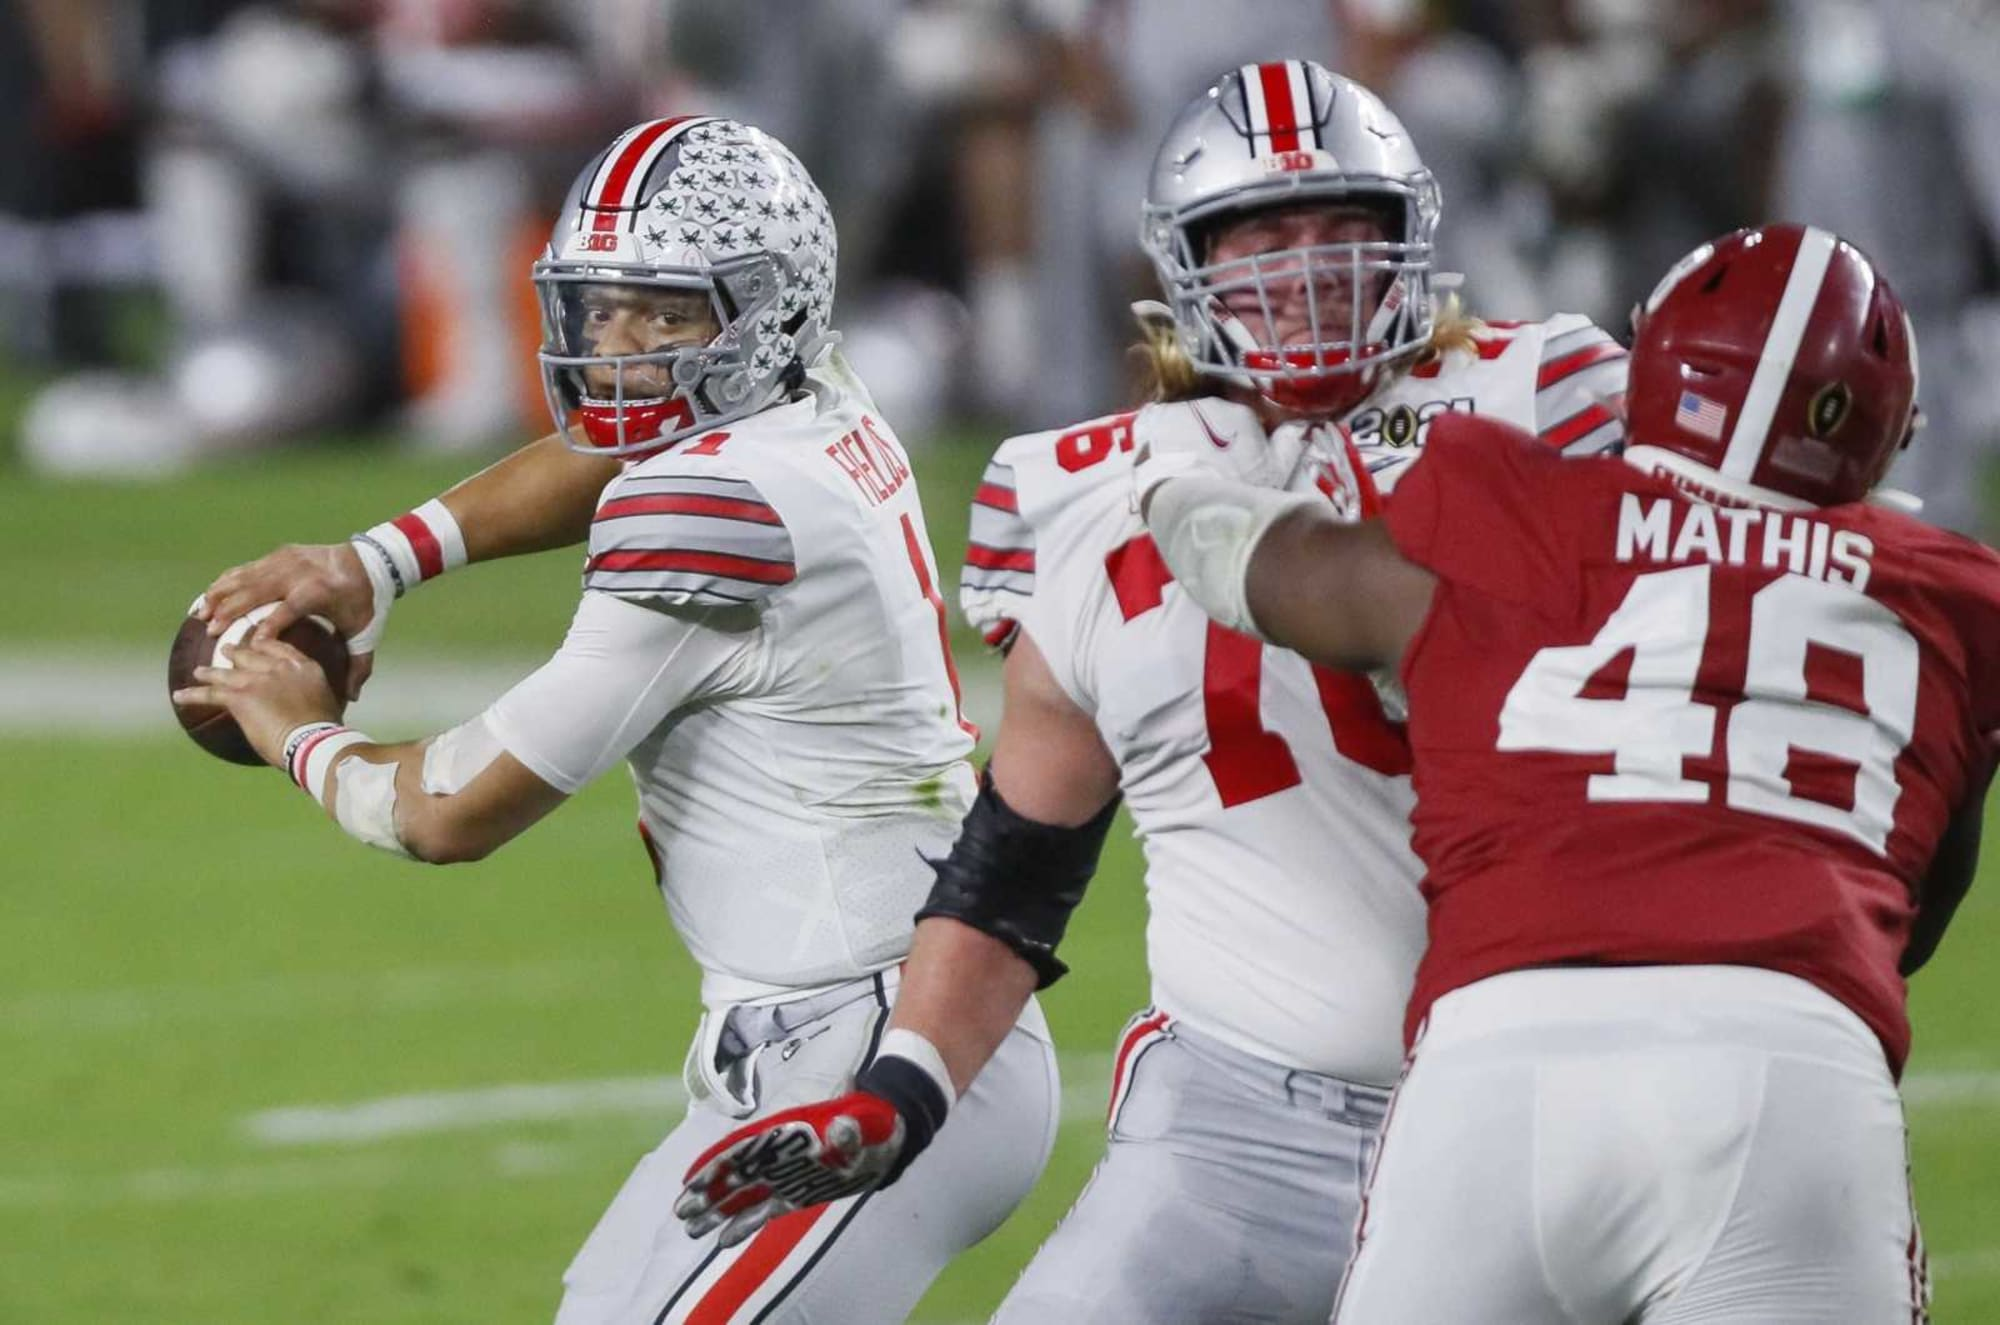 Ohio State football: Why Justin Fields would fit well with the Jets